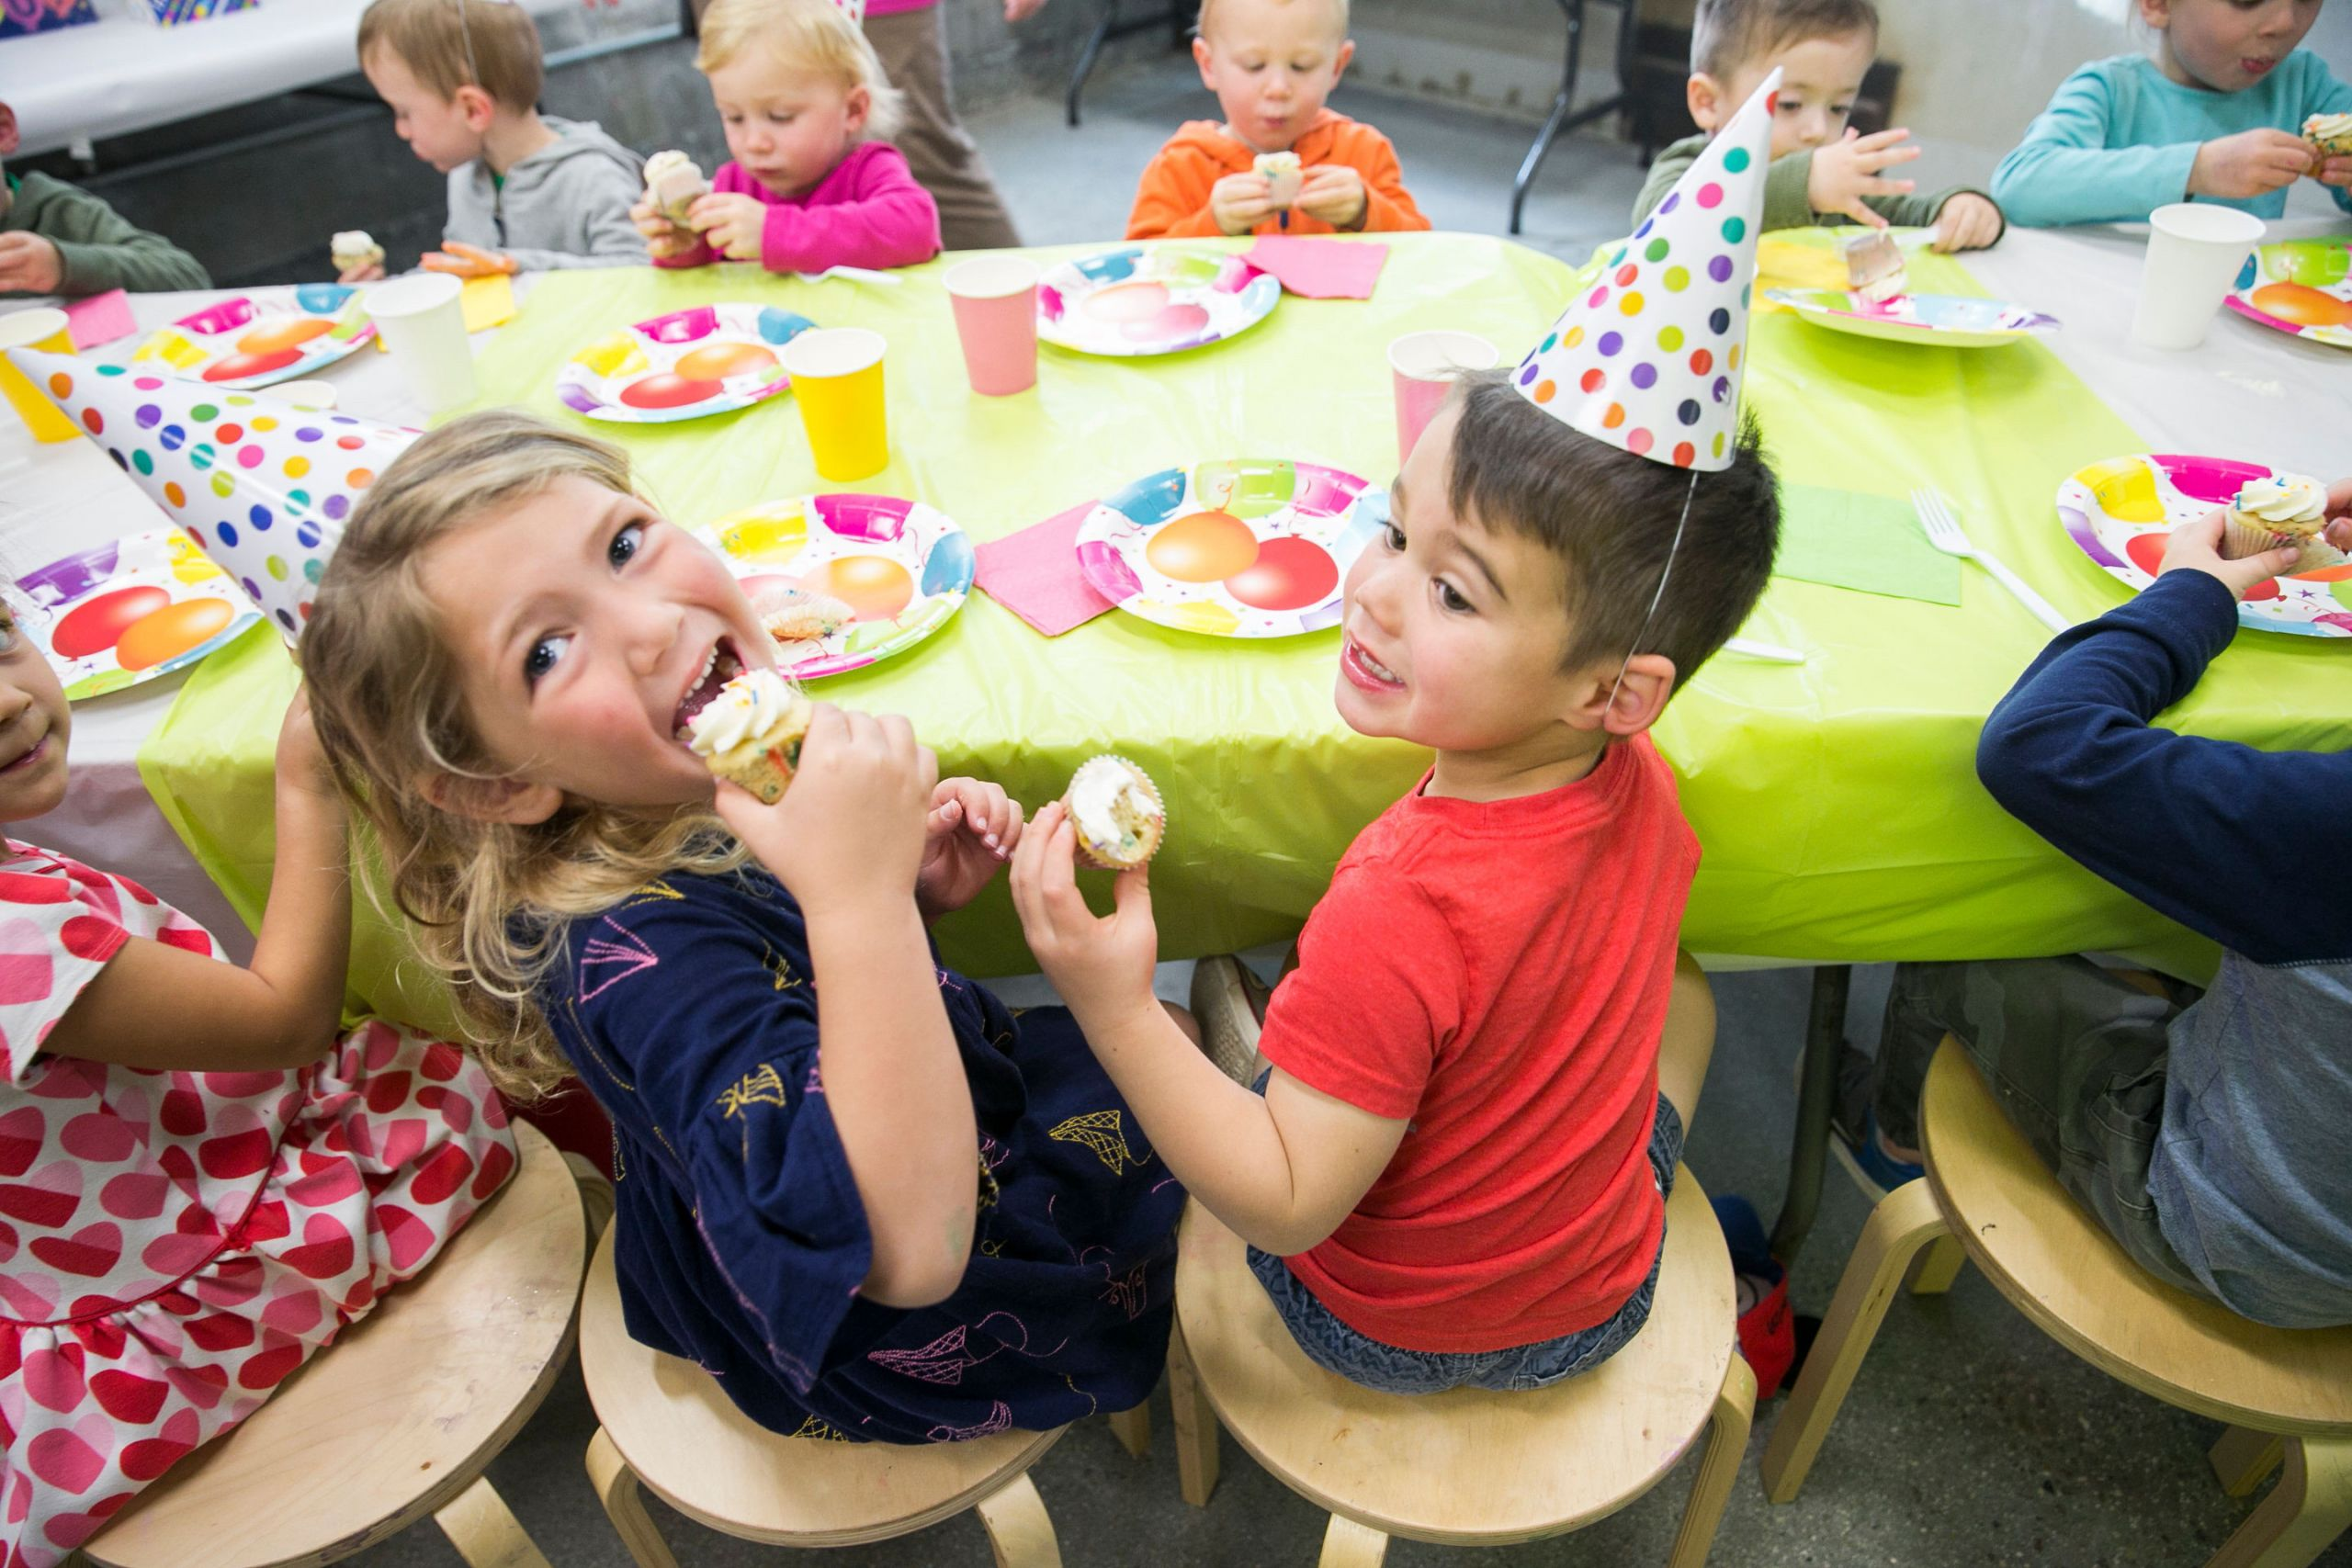 Kids Birthday Party Location Ideas  14 Kid's Birthday Party Venues That Are Easy to Book